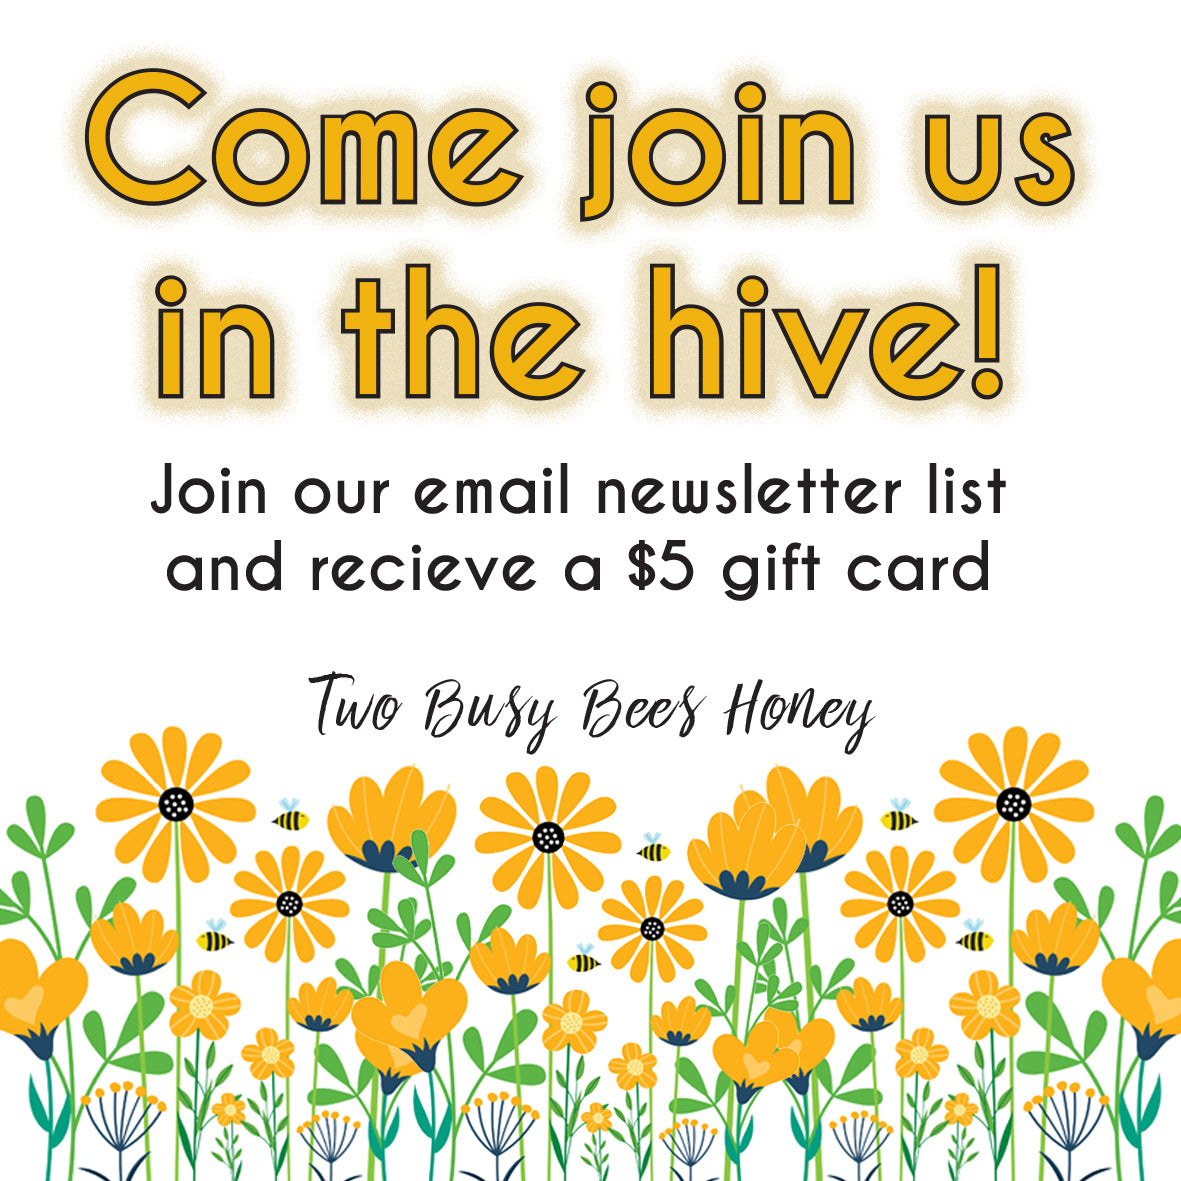 Email Newsletter Subscription - Two Busy Bees Honey